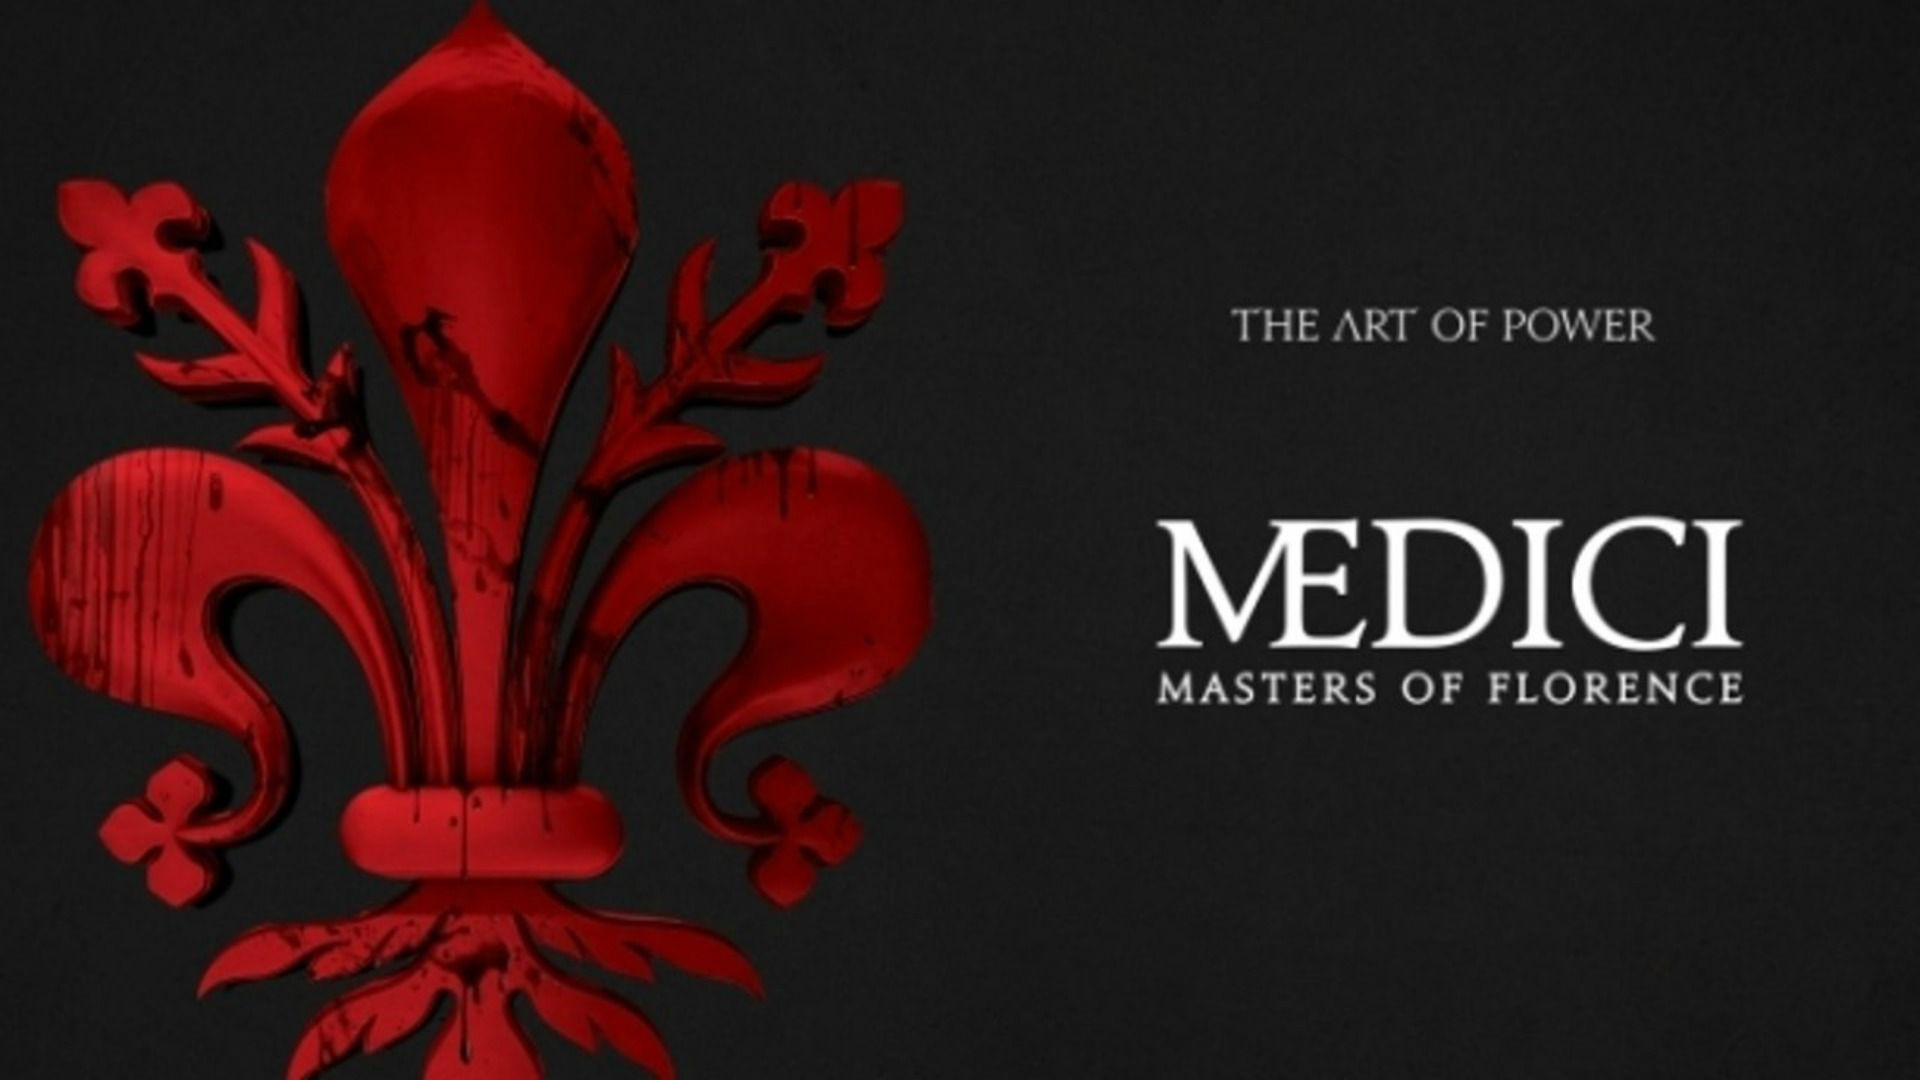 Best 49 Medici Wallpaper on HipWallpaper Villa De Medici 1920x1080